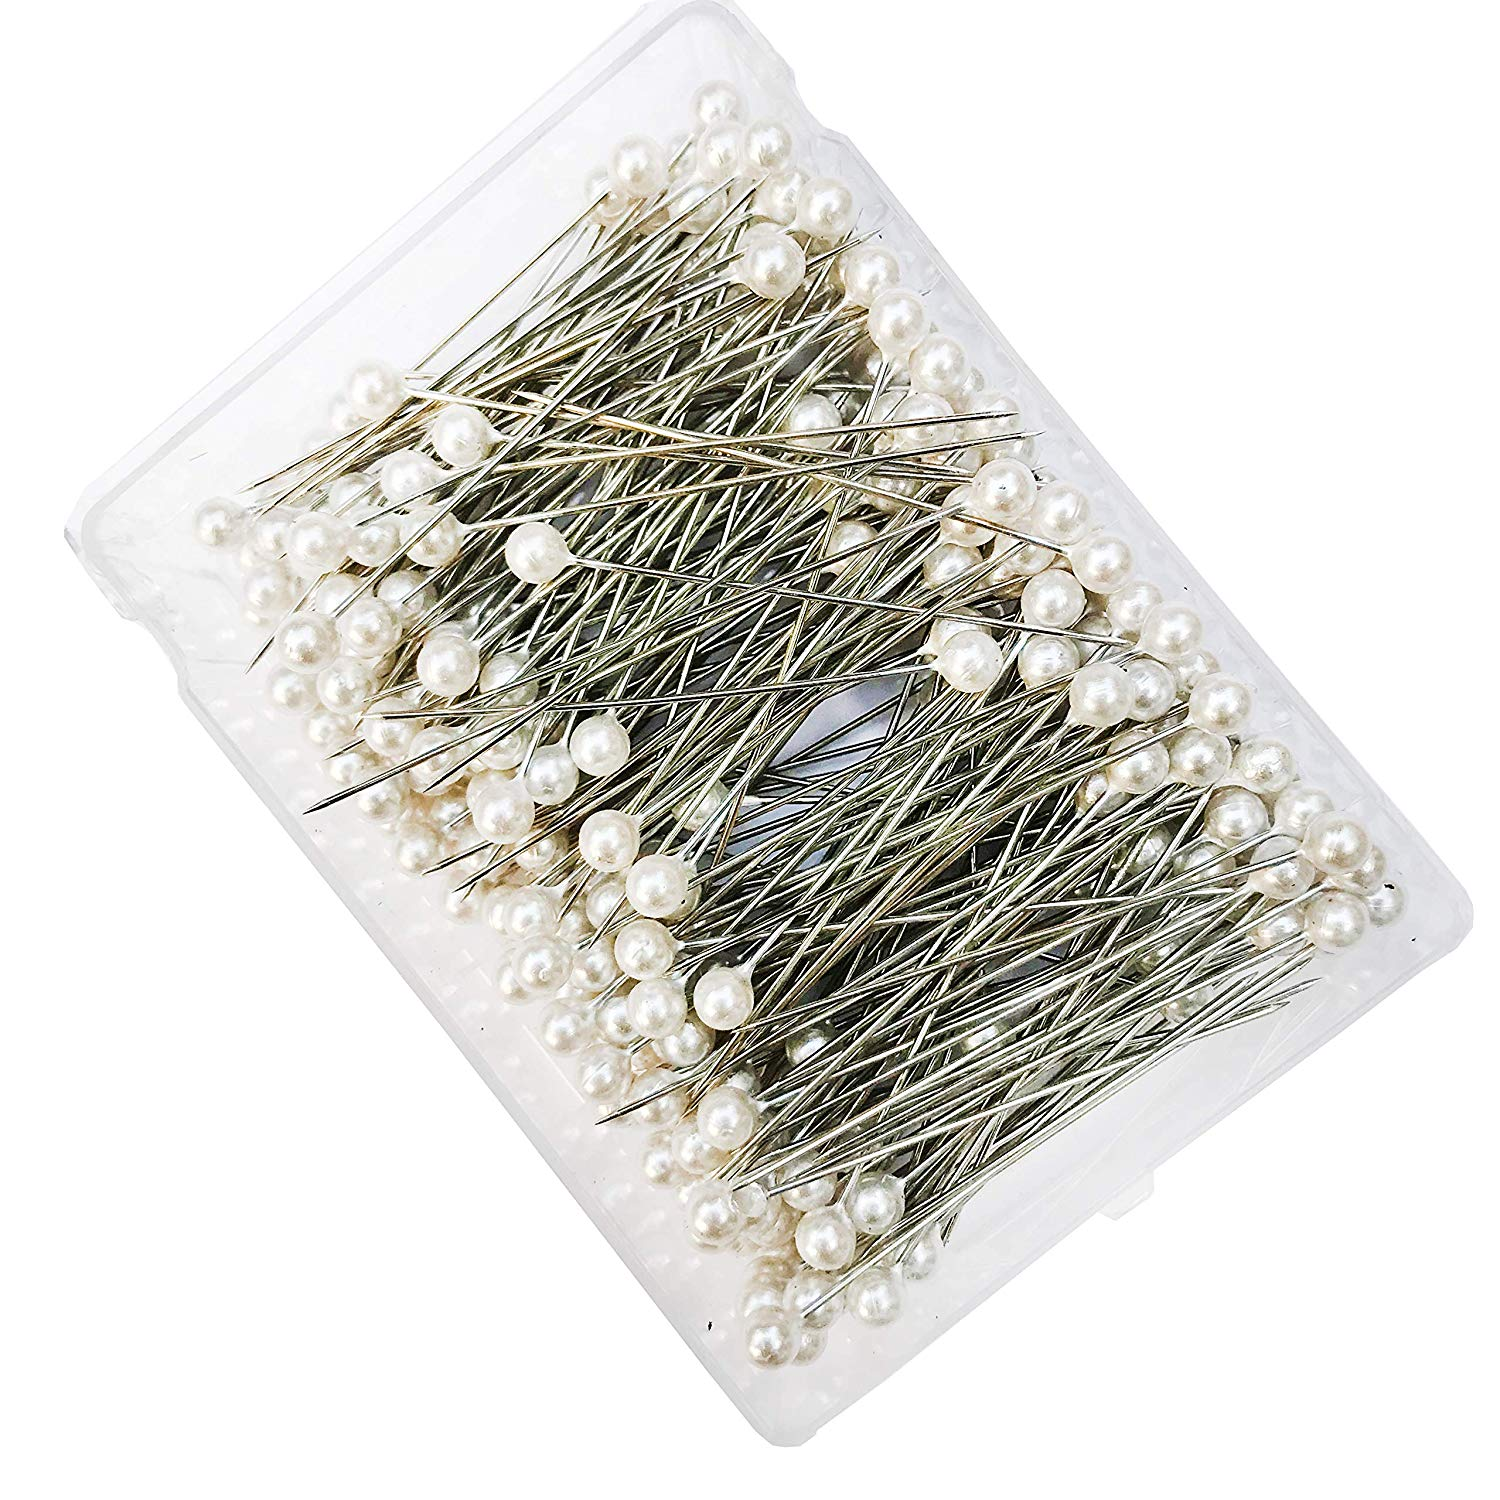 """6mm 2.5""""L 144Pcs White Round Pearl Headed Pins Corsages pin Straight Head Pins Dressmaking Dressmaker Pins Corsage Florists Sewing Pin for Wedding Flowers Buttonholes Corsages Bridal Floral Craft"""